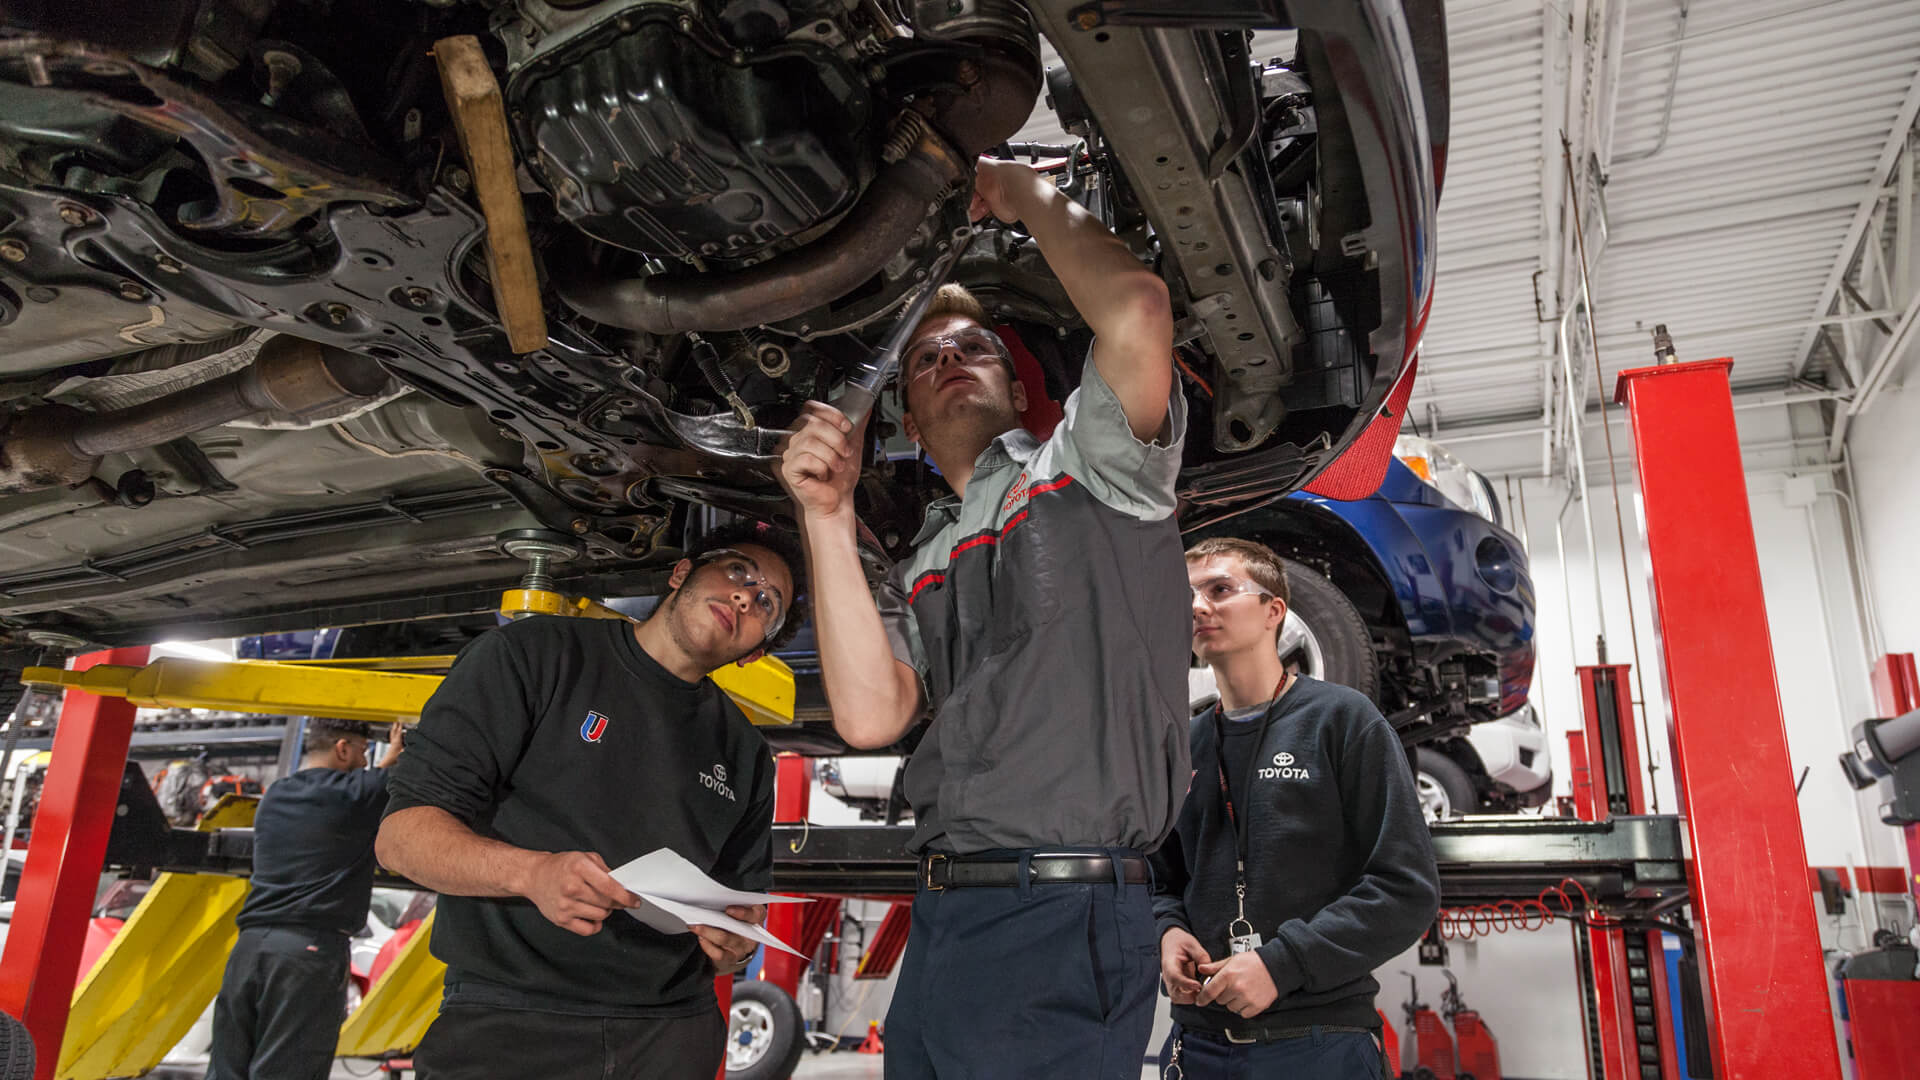 UTI students working underneath the car in the Toyota auto lab